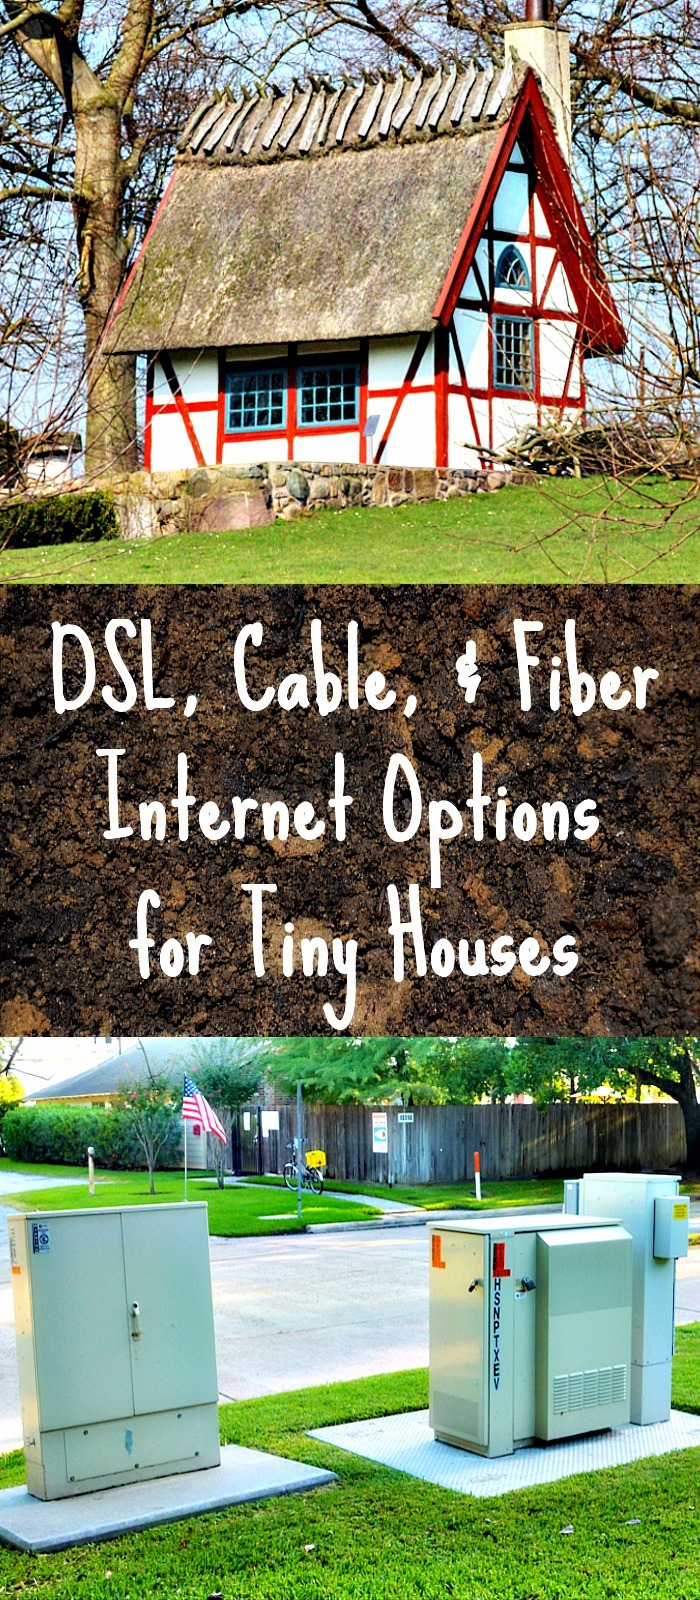 Wired Internet Options Dsl Cable And Fiber For Tiny Houses Wiring A House Voice 2 Home Pin